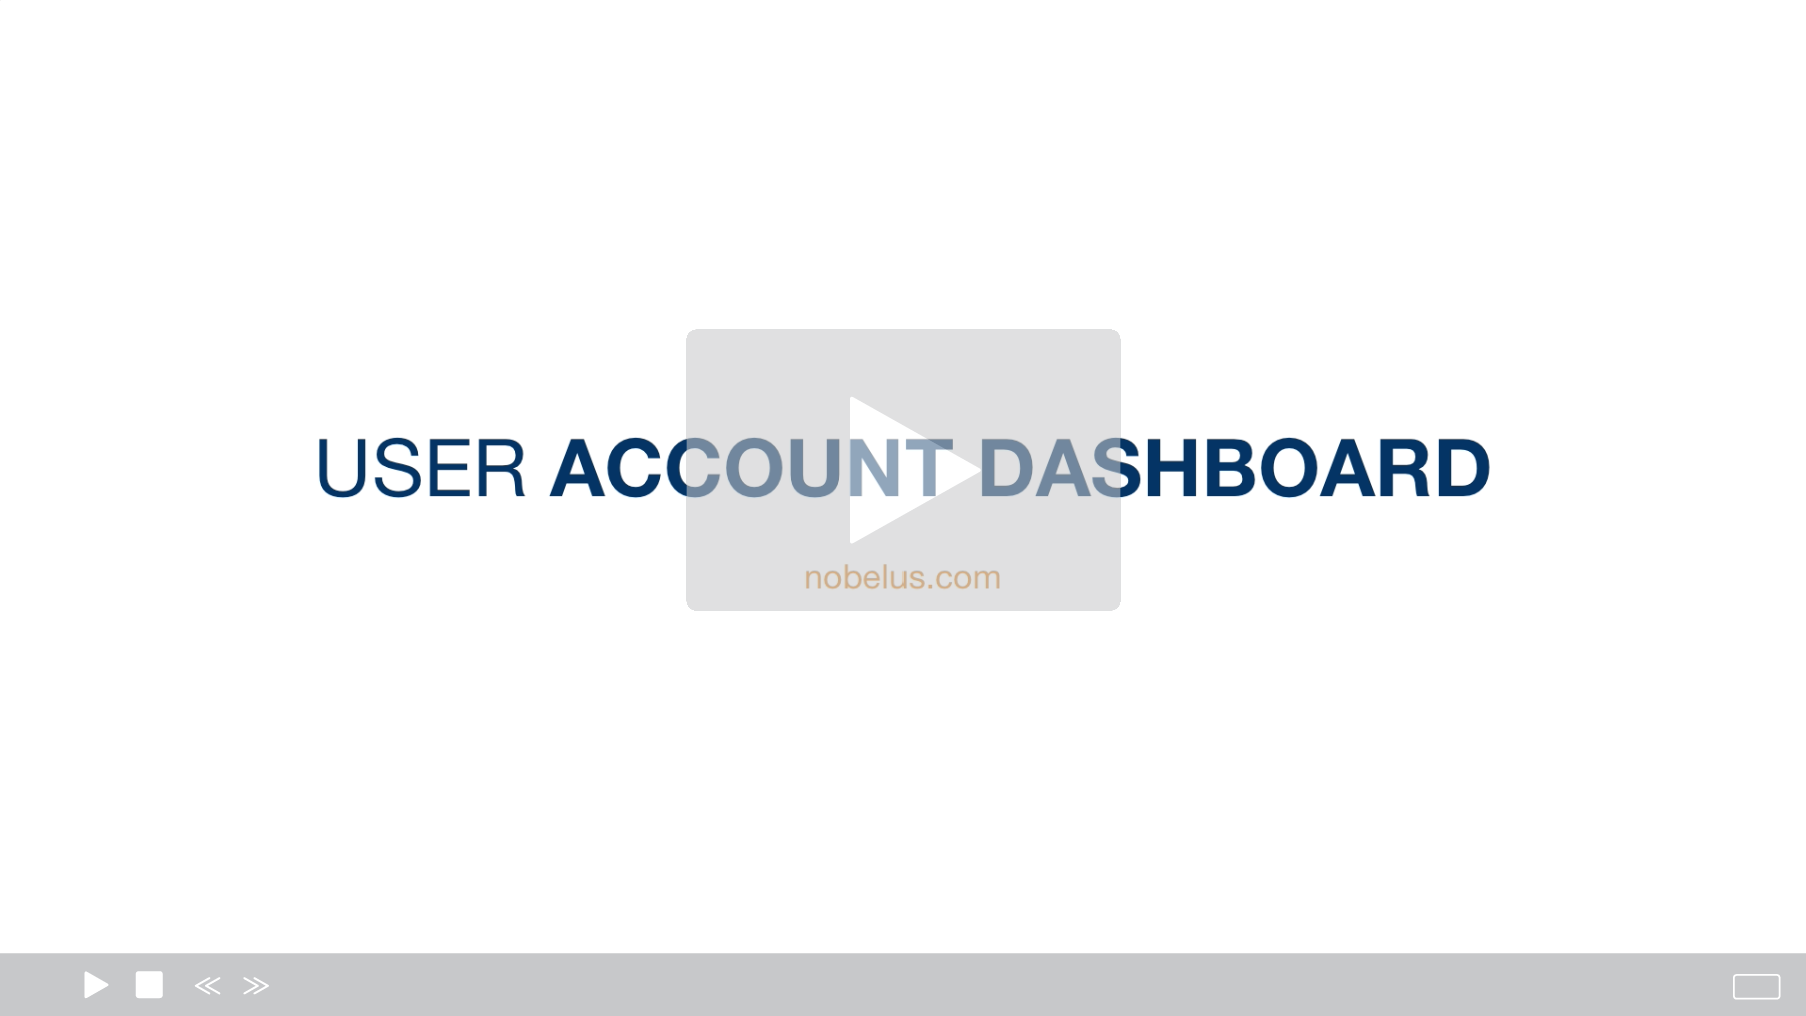 User Account Dashboard